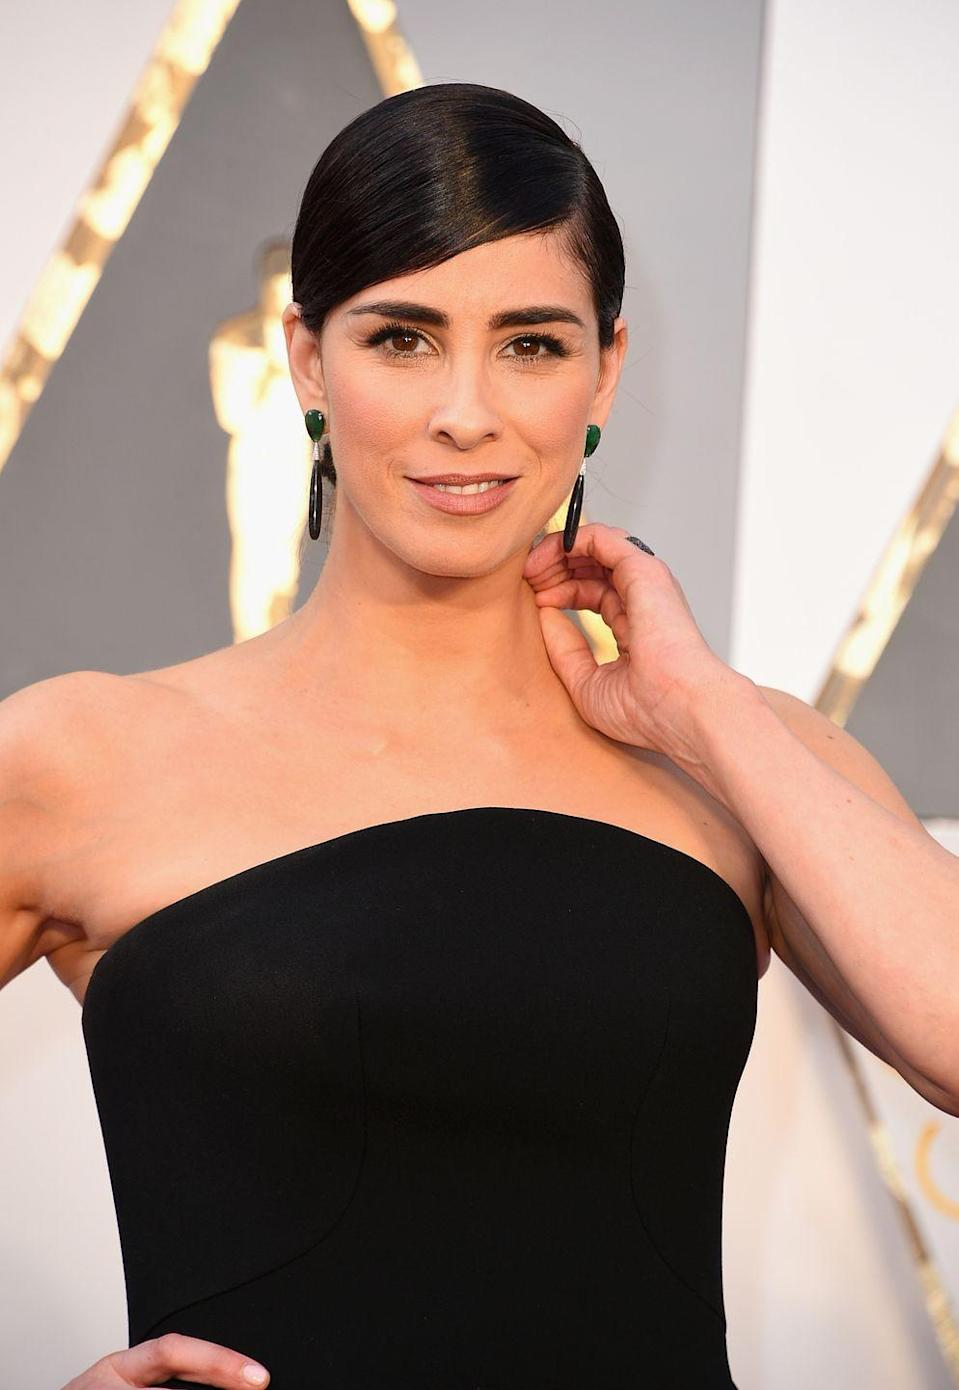 "<p>""People use 'panic attack' very casually out here in Los Angeles,"" she told <a href=""http://www.glamour.com/story/sarah-silverman-on-i-smile-back-and-battle-with-depression"" rel=""nofollow noopener"" target=""_blank"" data-ylk=""slk:Glamour"" class=""link rapid-noclick-resp"">Glamour</a>. ""But I don't think most of them really know what it is. Every breath is laboured. You are dying. You are going to die. It's terrifying. And then when the attack is over, the depression is still there...I wouldn't wish depression on anyone. But if you ever experience it, or are experiencing it right now, just know that on the other side, the little joys in life will be that much sweeter. The tough times, the days when you're just a ball on the floor-they'll pass. You're playing the long game and life is totally worth it.""</p>"